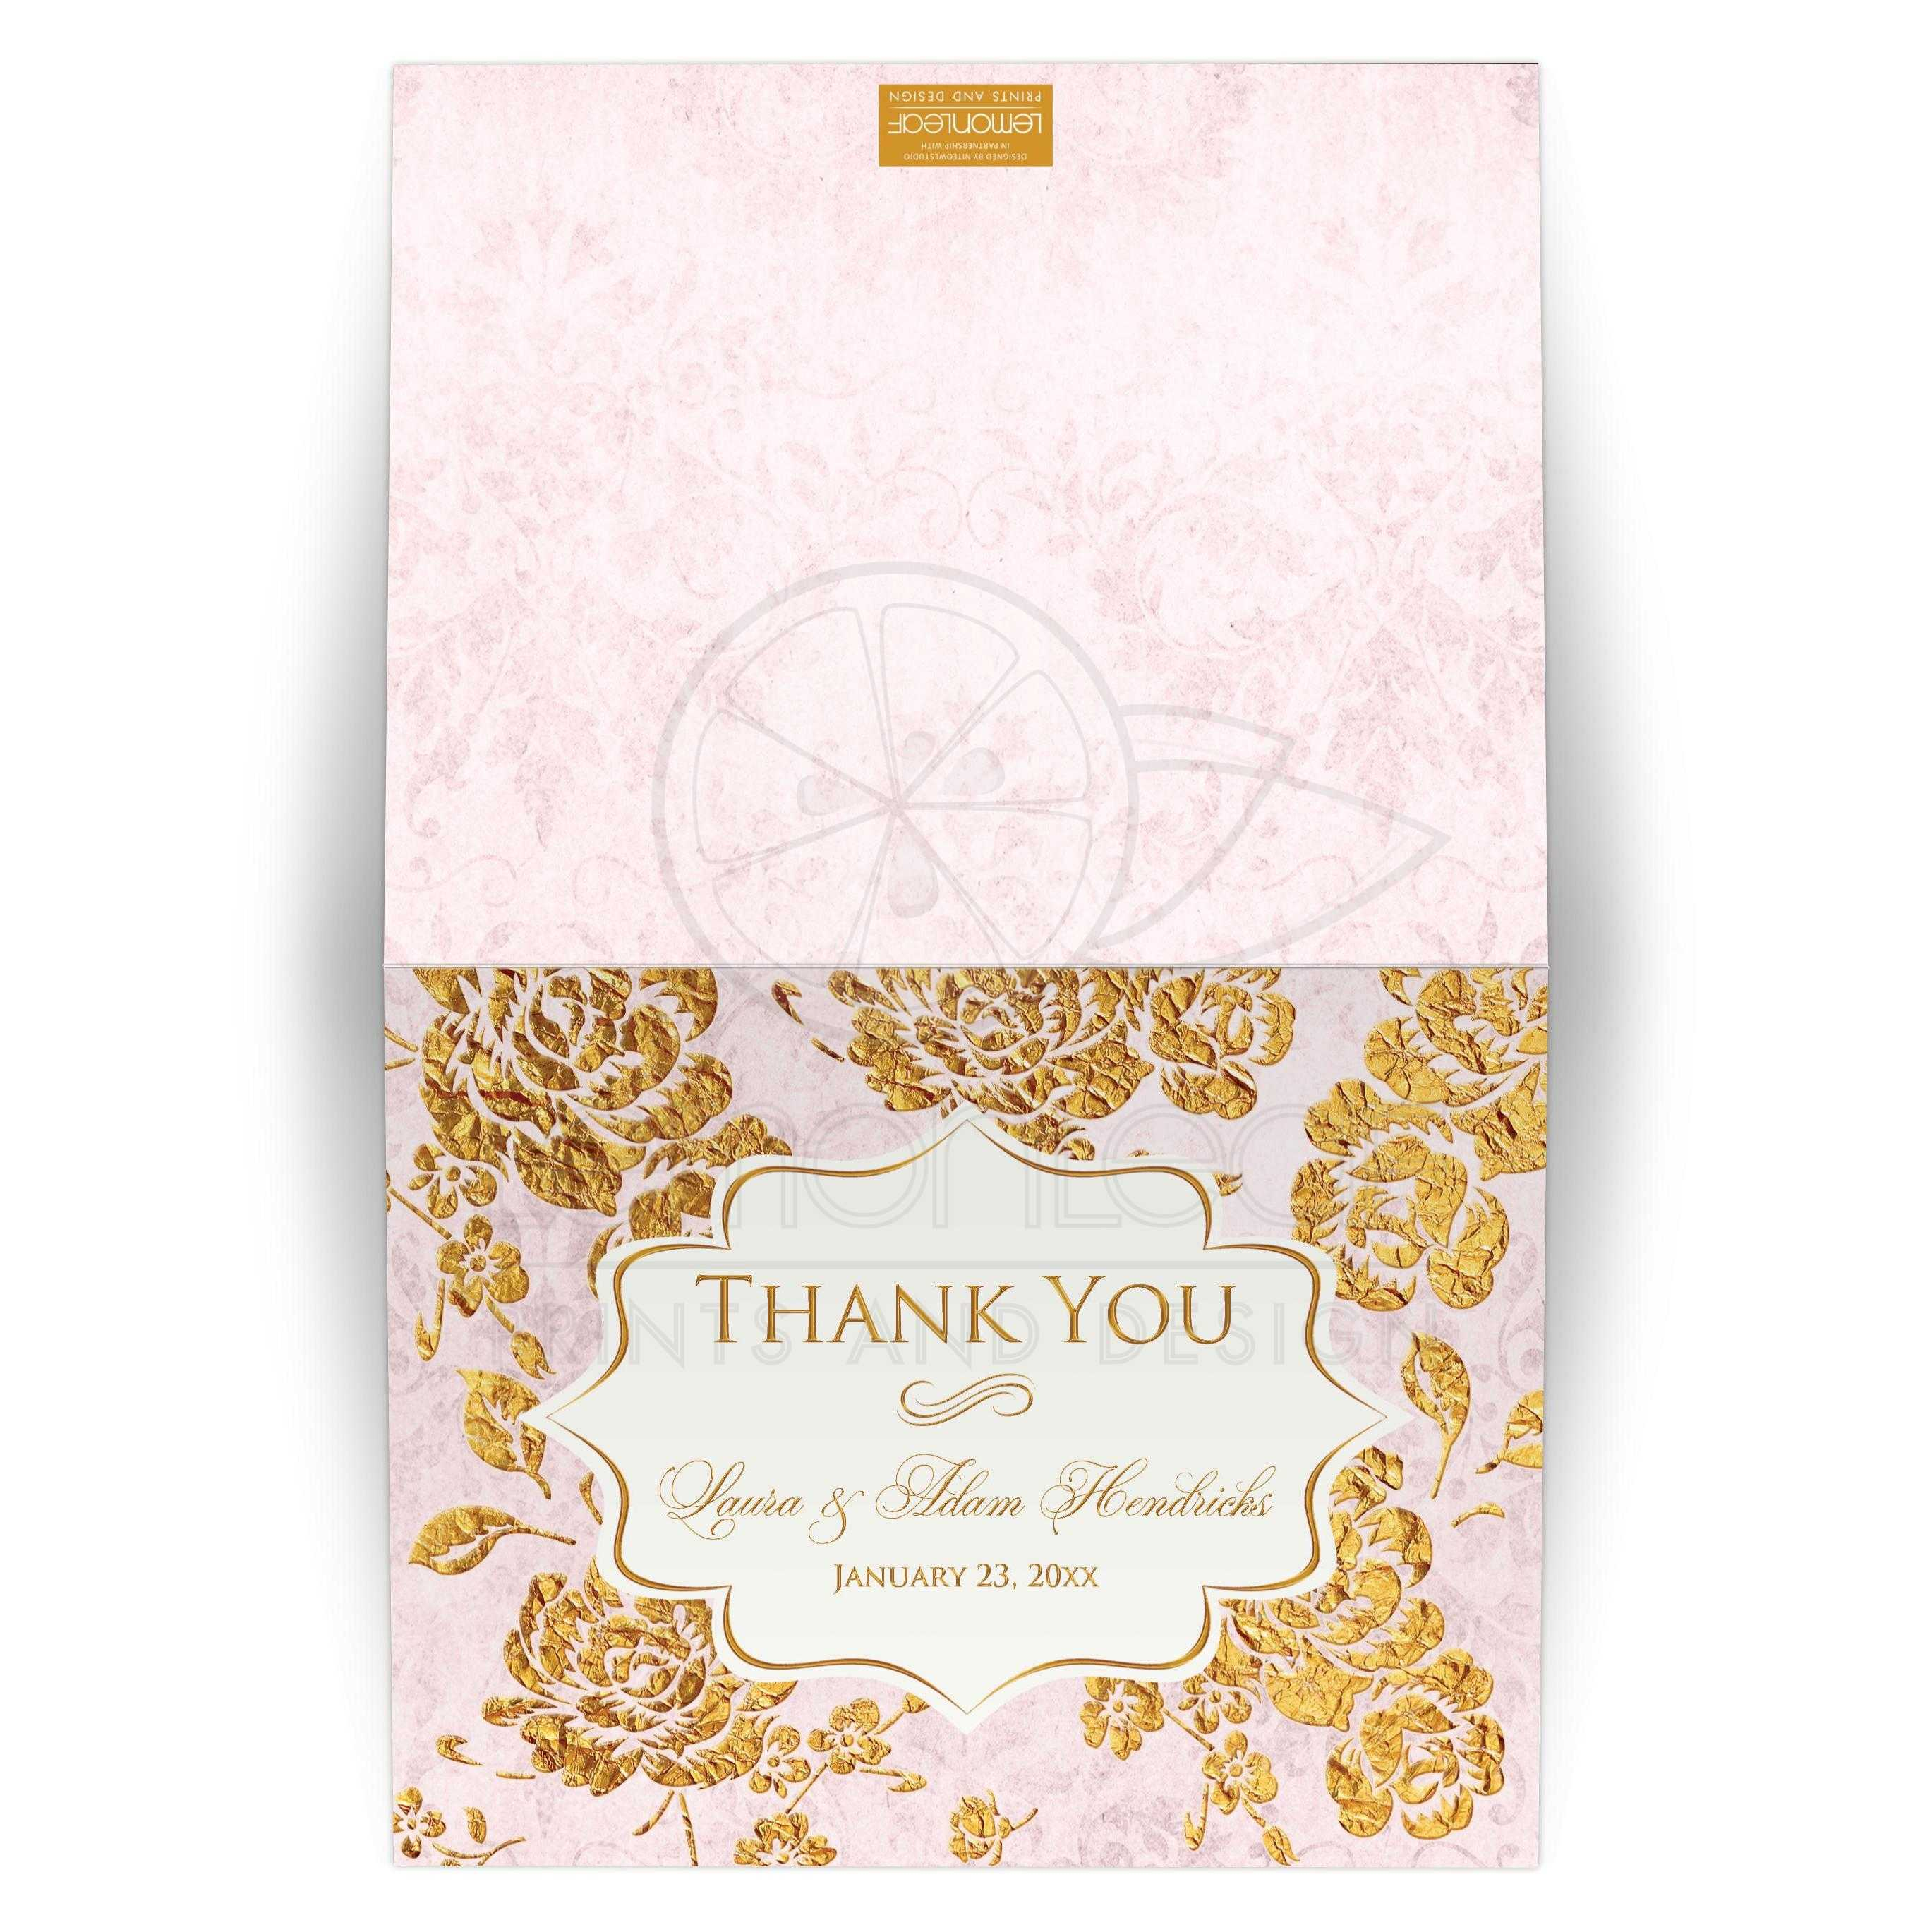 Personalized Wedding Thank You Card Vintage Floral – Monogram Wedding Thank You Cards